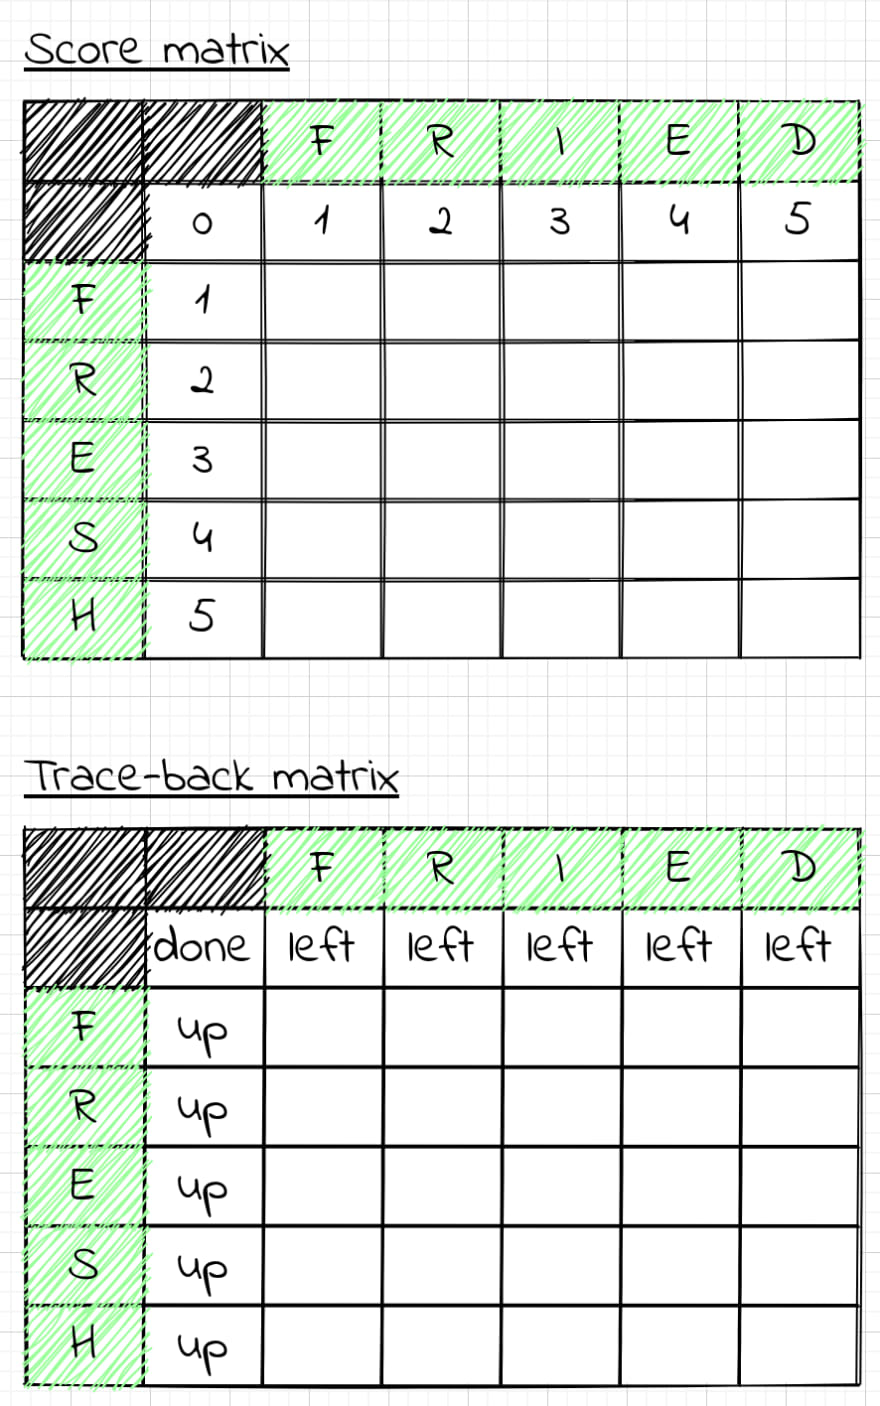 Prefilled score and trace-back matrices